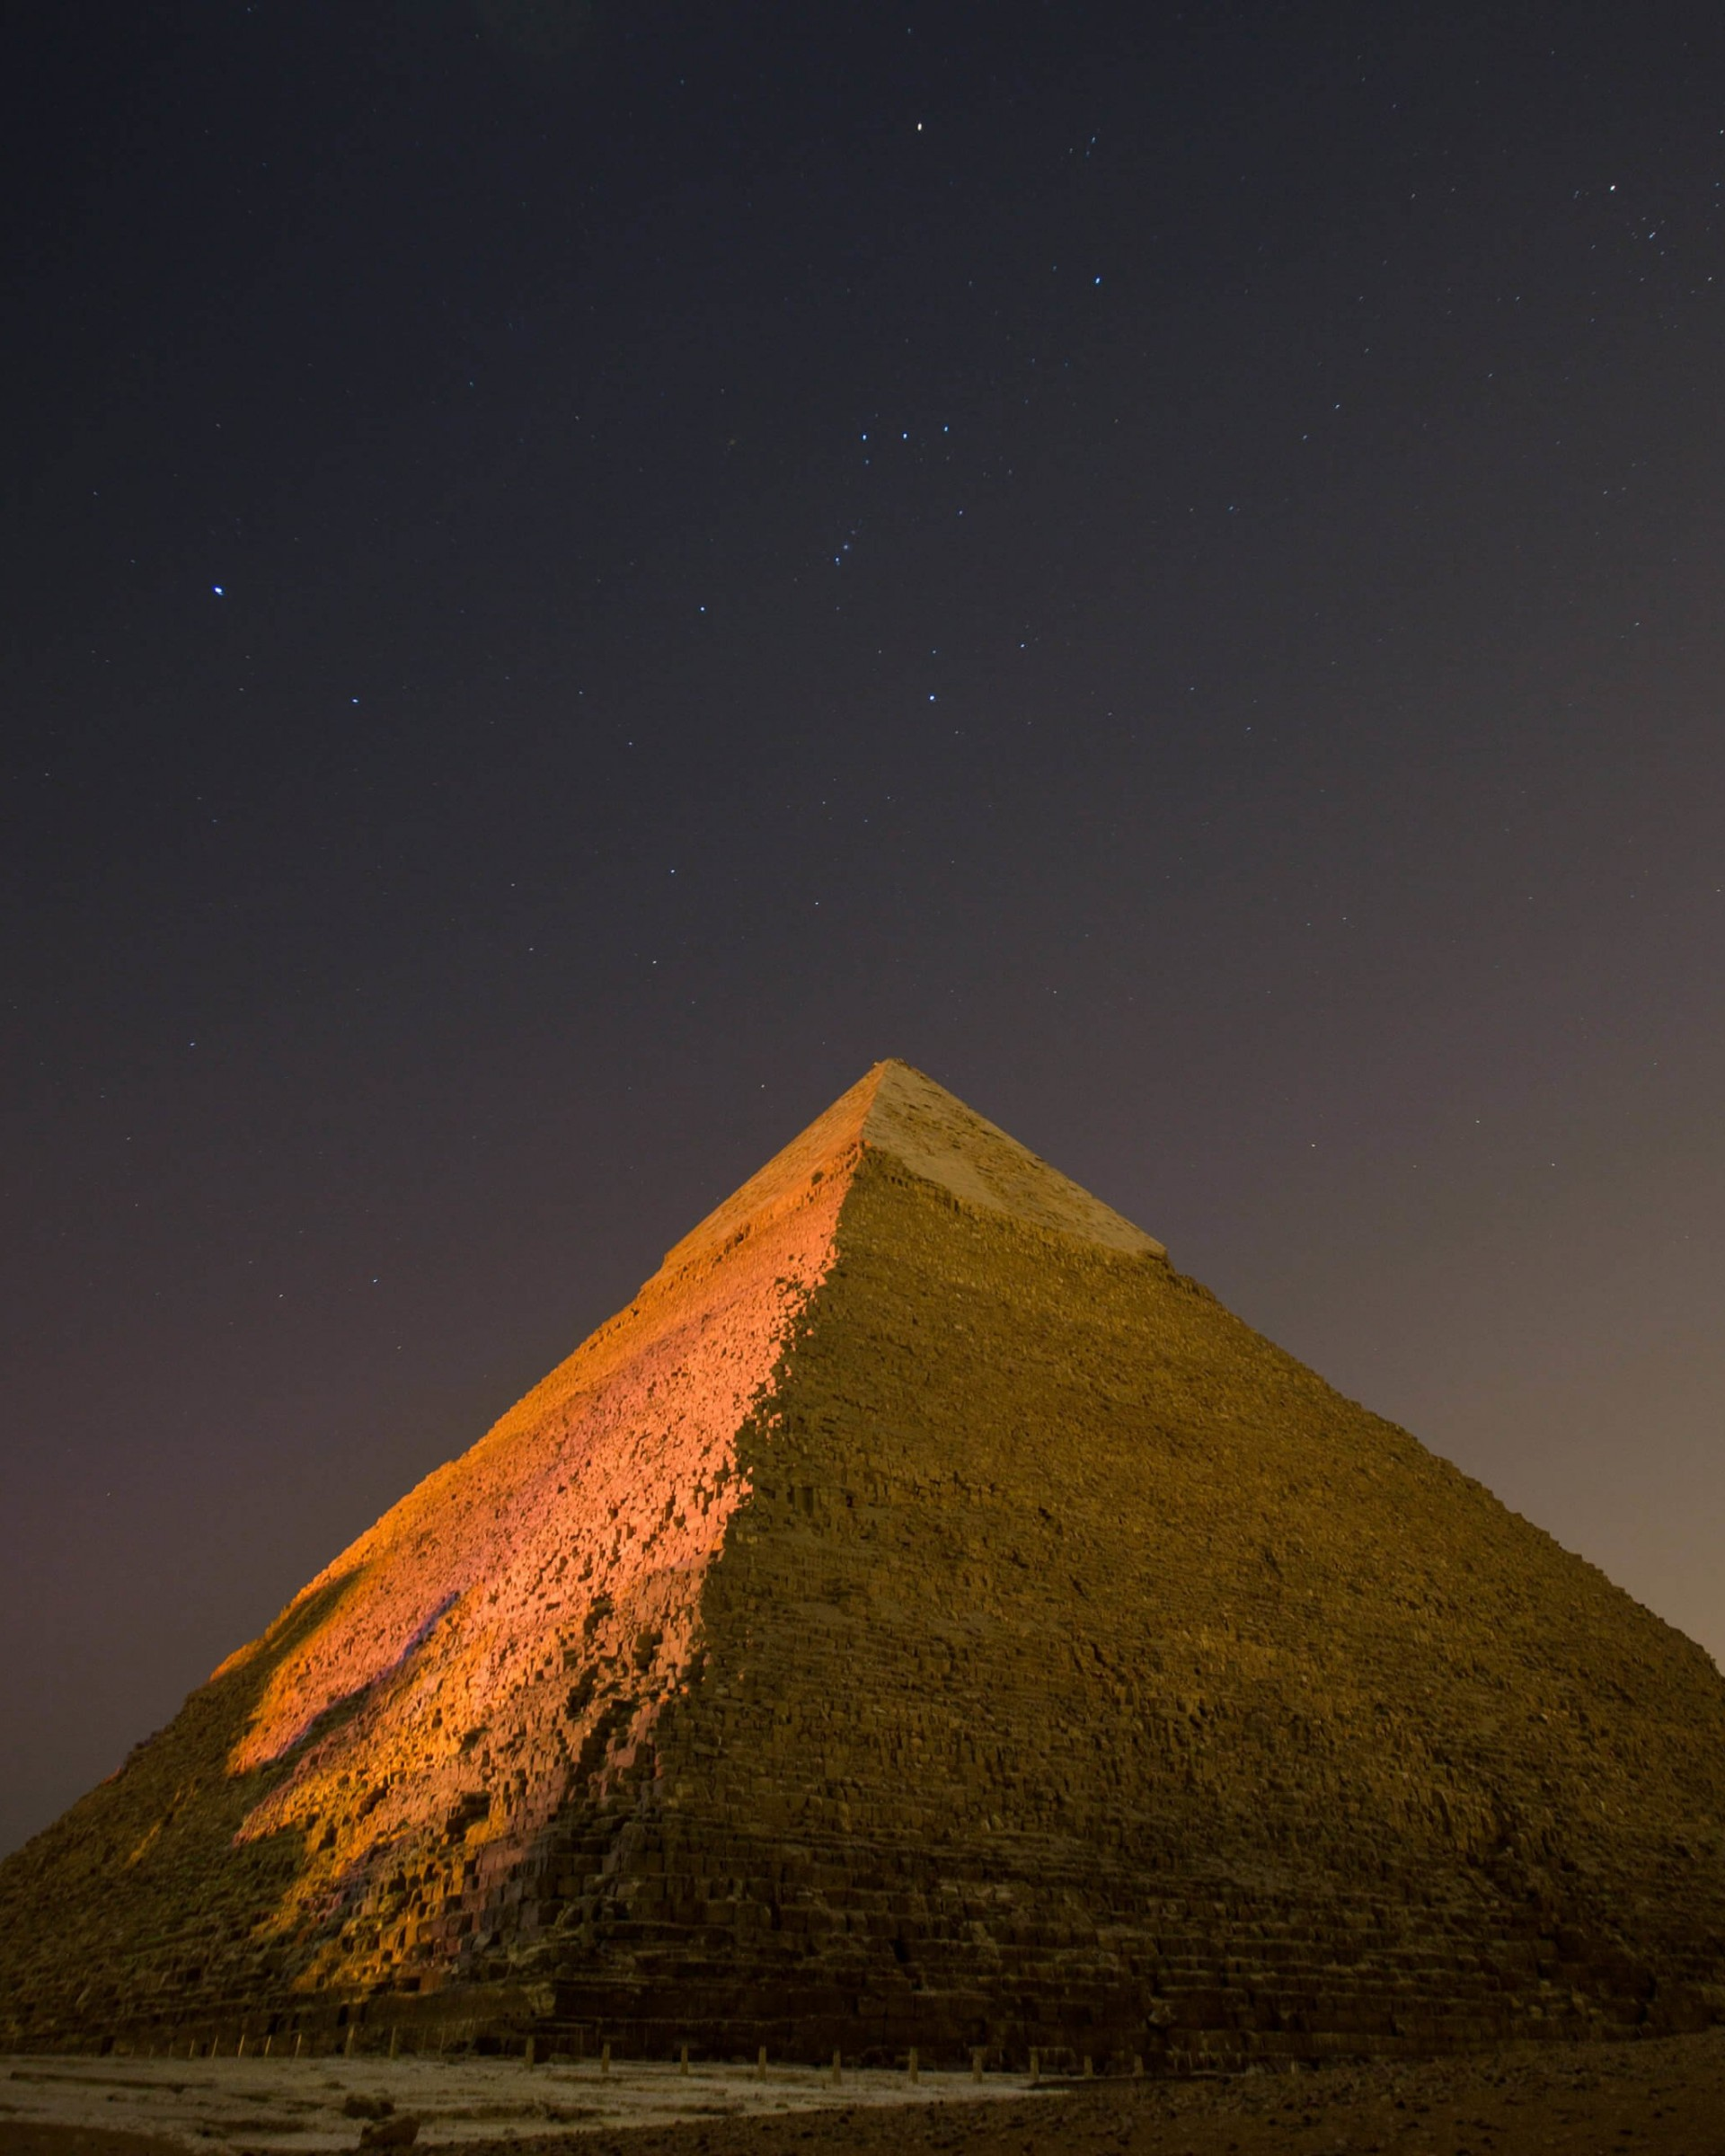 Download Pyramid By Night Hd Wallpaper For Nexus 7